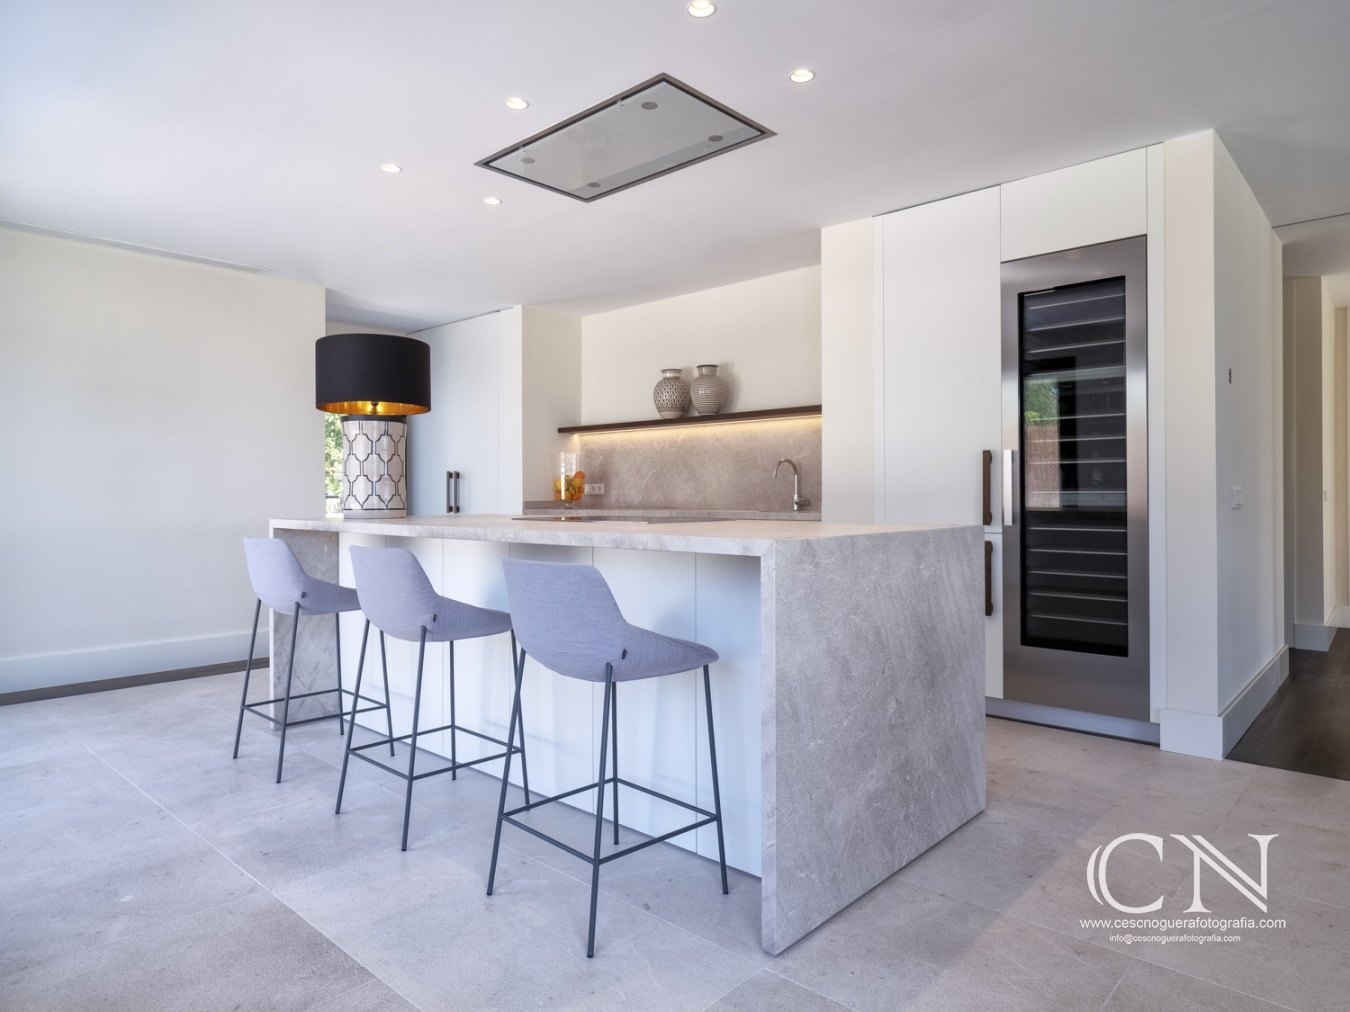 Real Estate Photography  - Cesc Noguera Fotografie, Wenn Fotografie ist eine Leidenschaft, Architectural & Interior design photographer / Landscape Photography